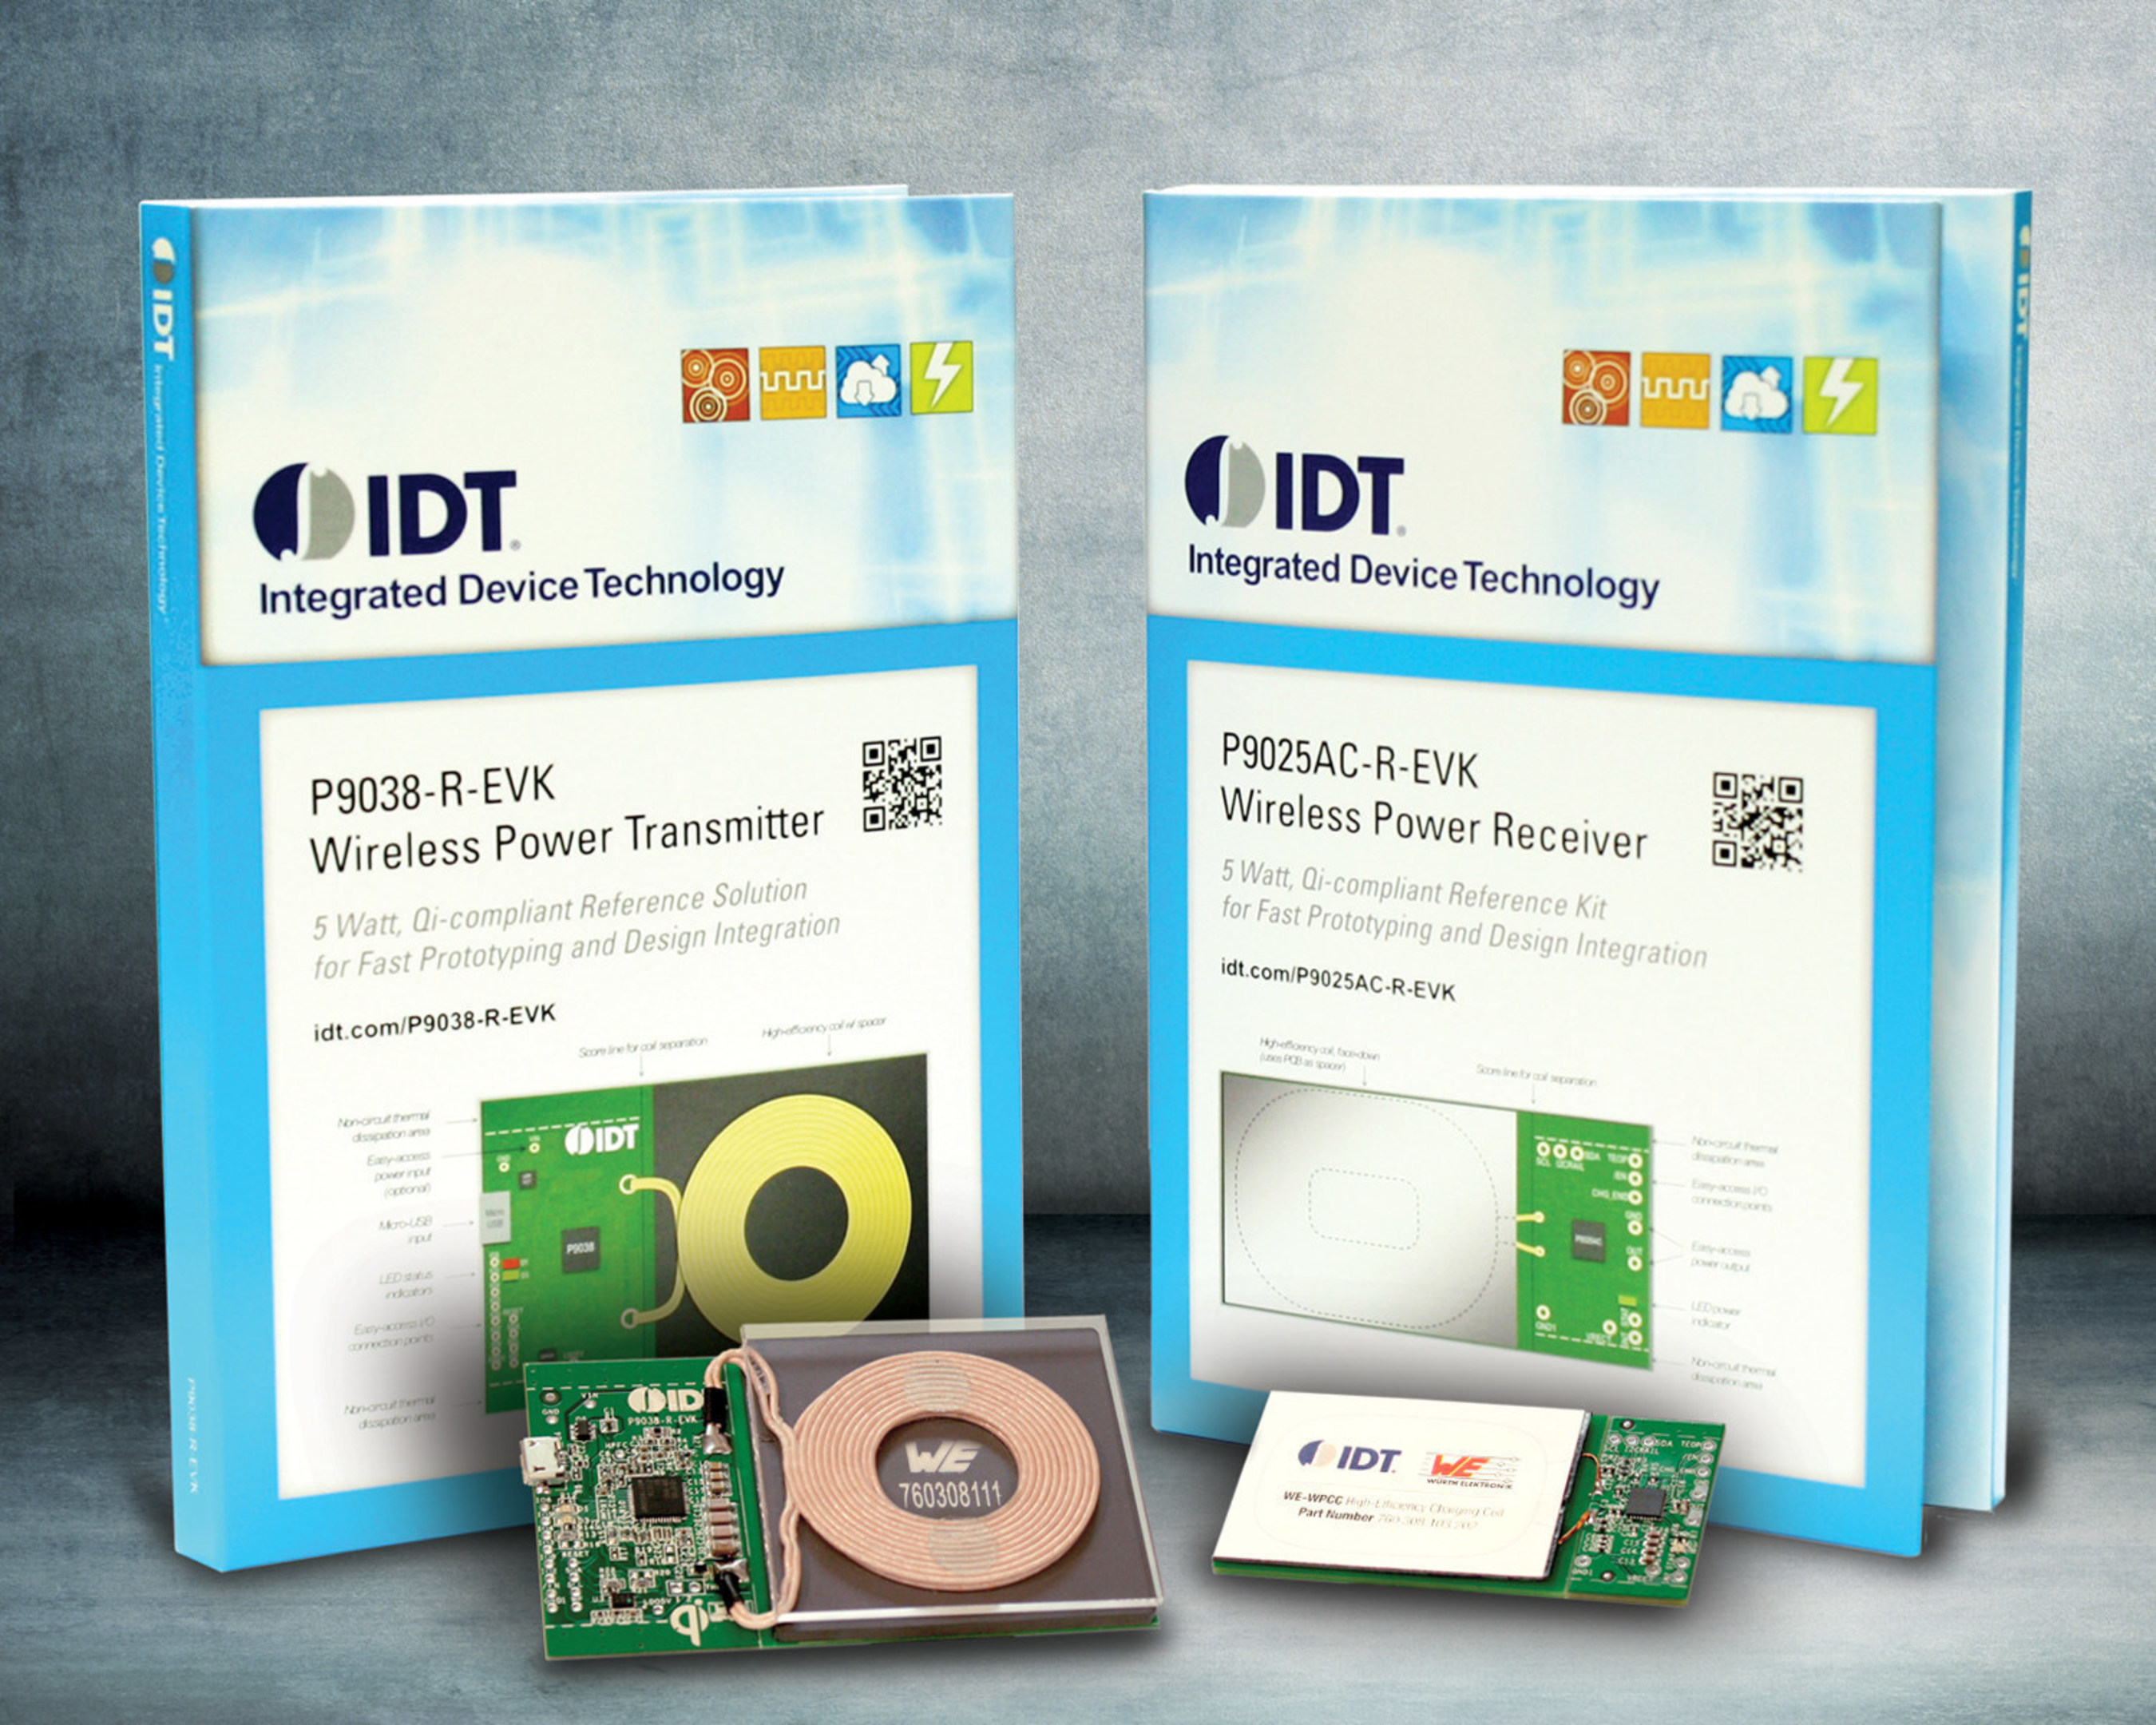 IDT Teams Up With Digi-Key Electronics for Contest to Create Wirelessly Powered Devices